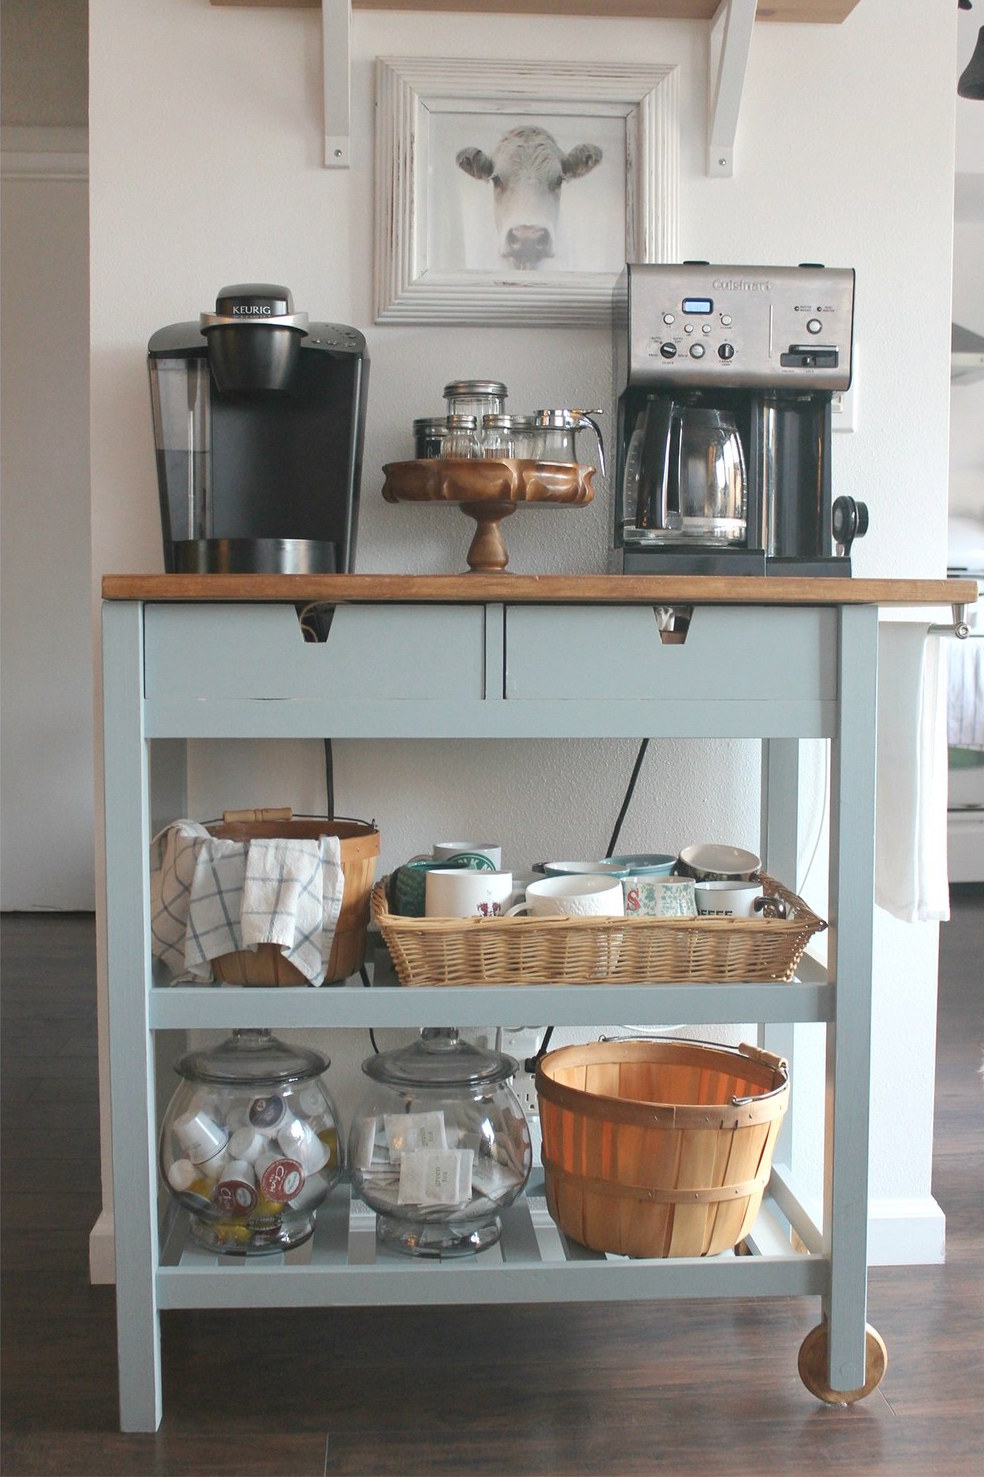 Ikea Hacks 7 brilliant ikea hacks to organize your kitchen simple